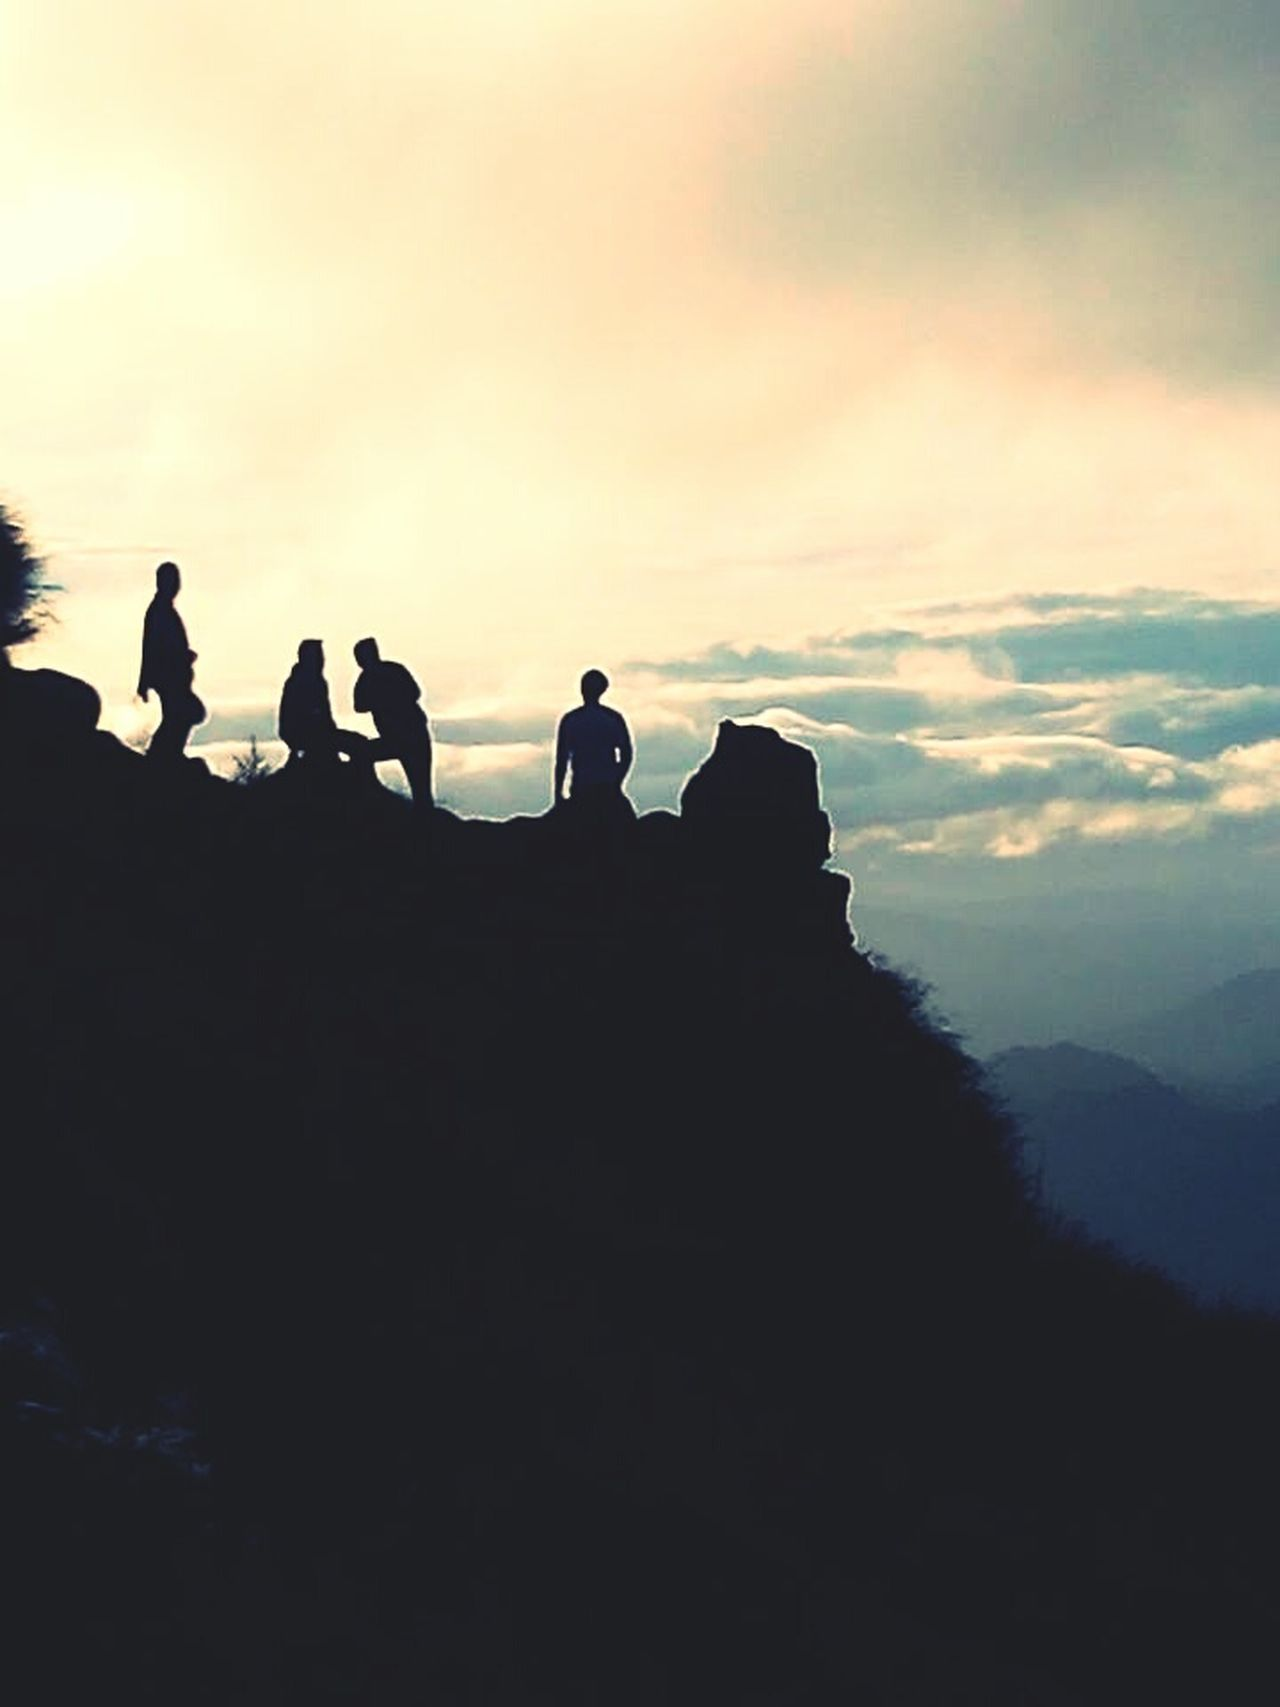 Adventure Trekking TravelPhilippines Silhouette Hiking Travel Destinations Vacations Outdoors Togetherness Friendship People Cloud - Sky Rock - Object First Eyeem Photo